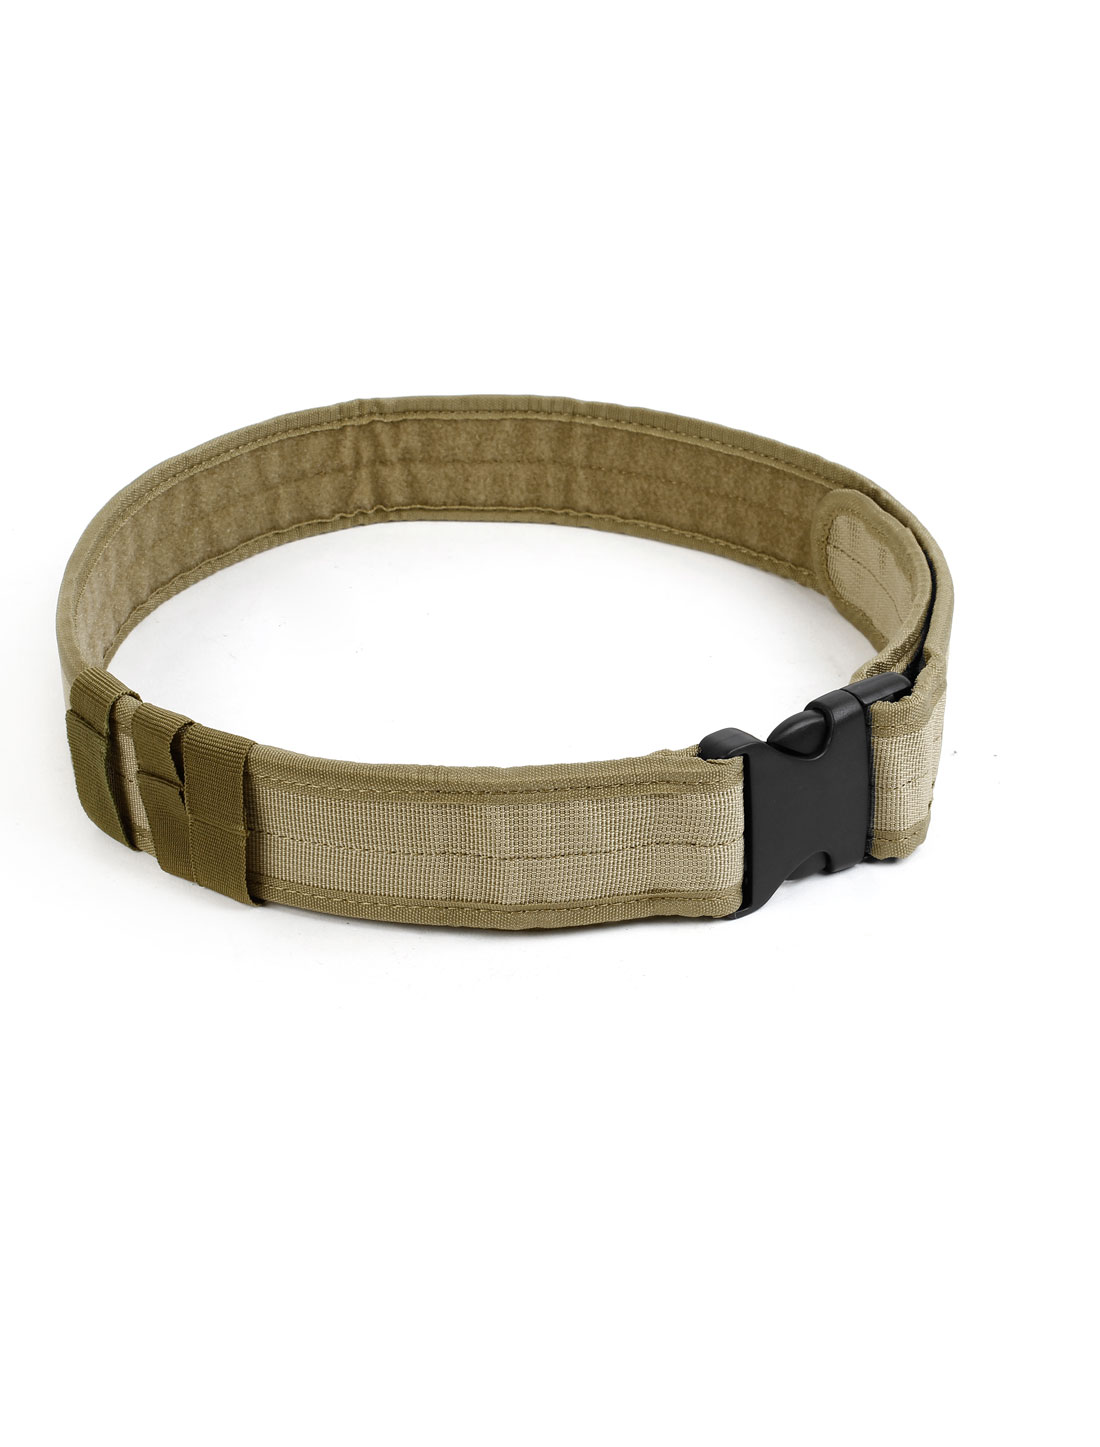 Men Release Buckle Adjustable Casual Canvas Military Waist Belt Khaki